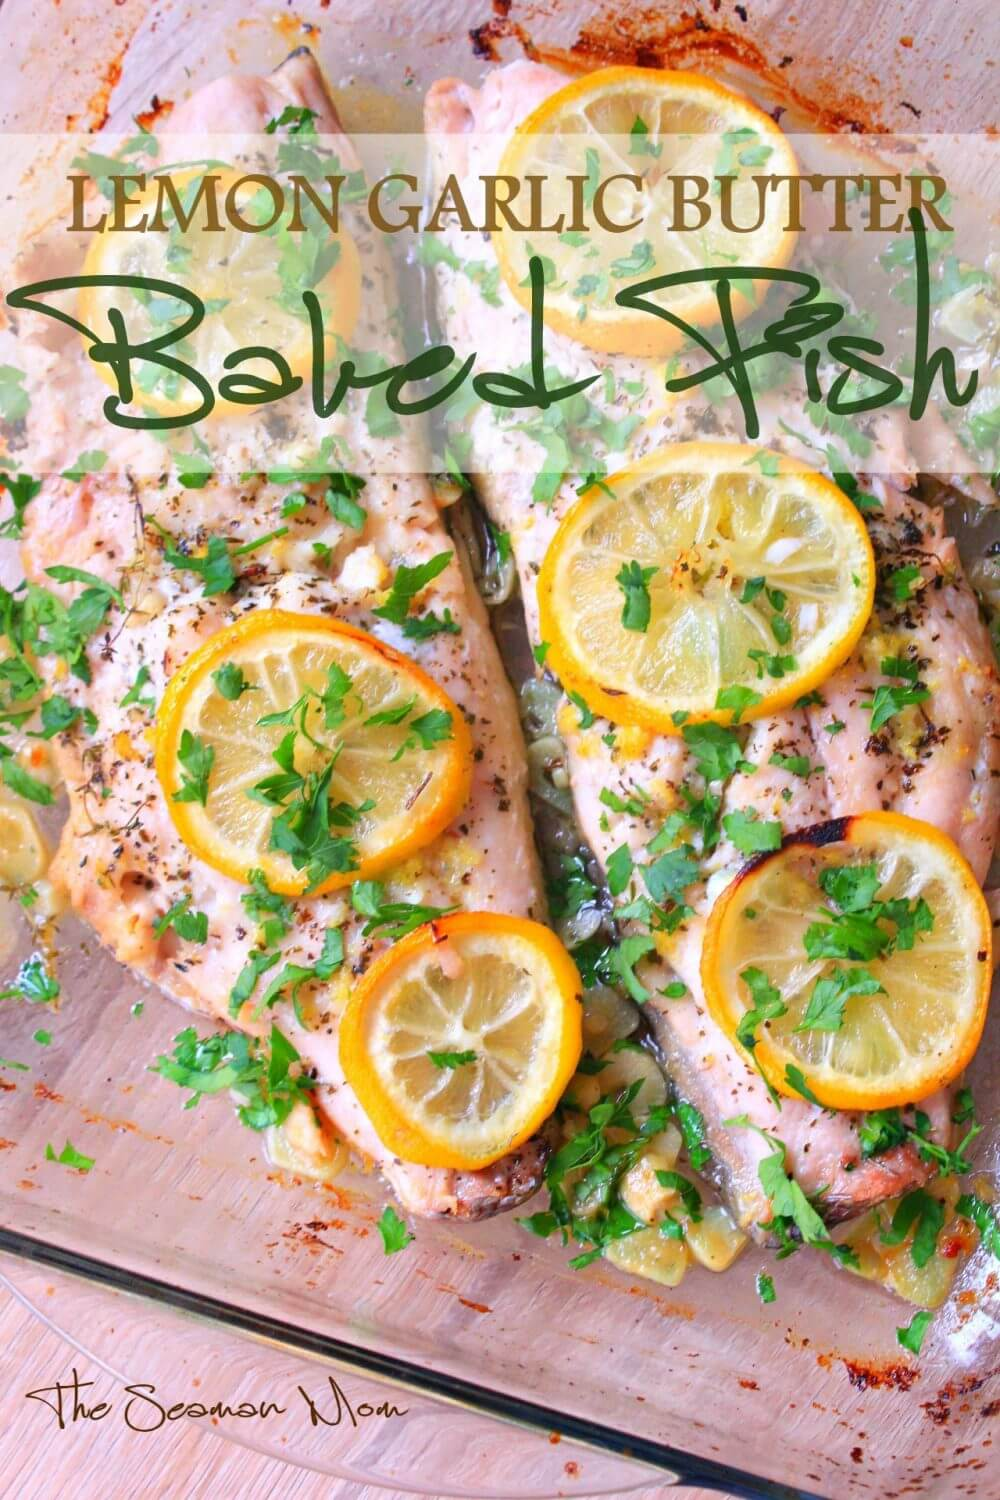 Lemon butter fish covered in lemon rounds, in a glass baking dish